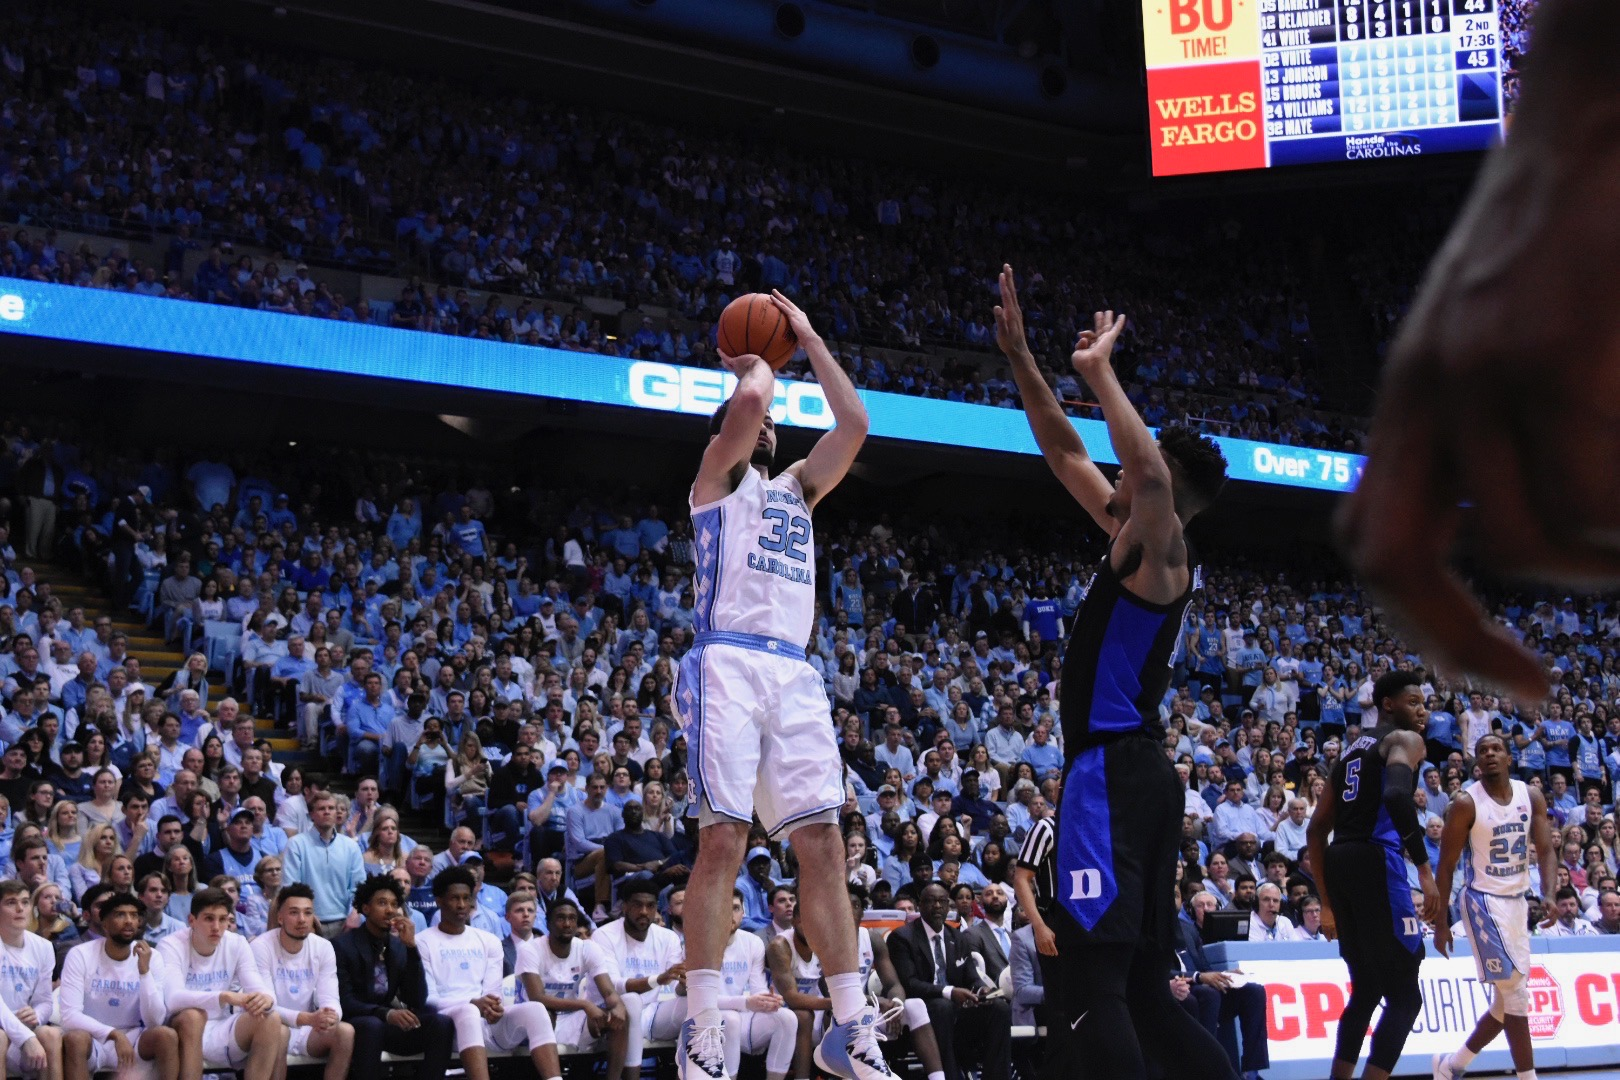 Luke Maye fadesaway for a shot against Duke on Saturday. The senior forward only scored seven points, but contributed in big ways elsewhere, with 16 rebounds and seven assists. | Photo by Turner Walston